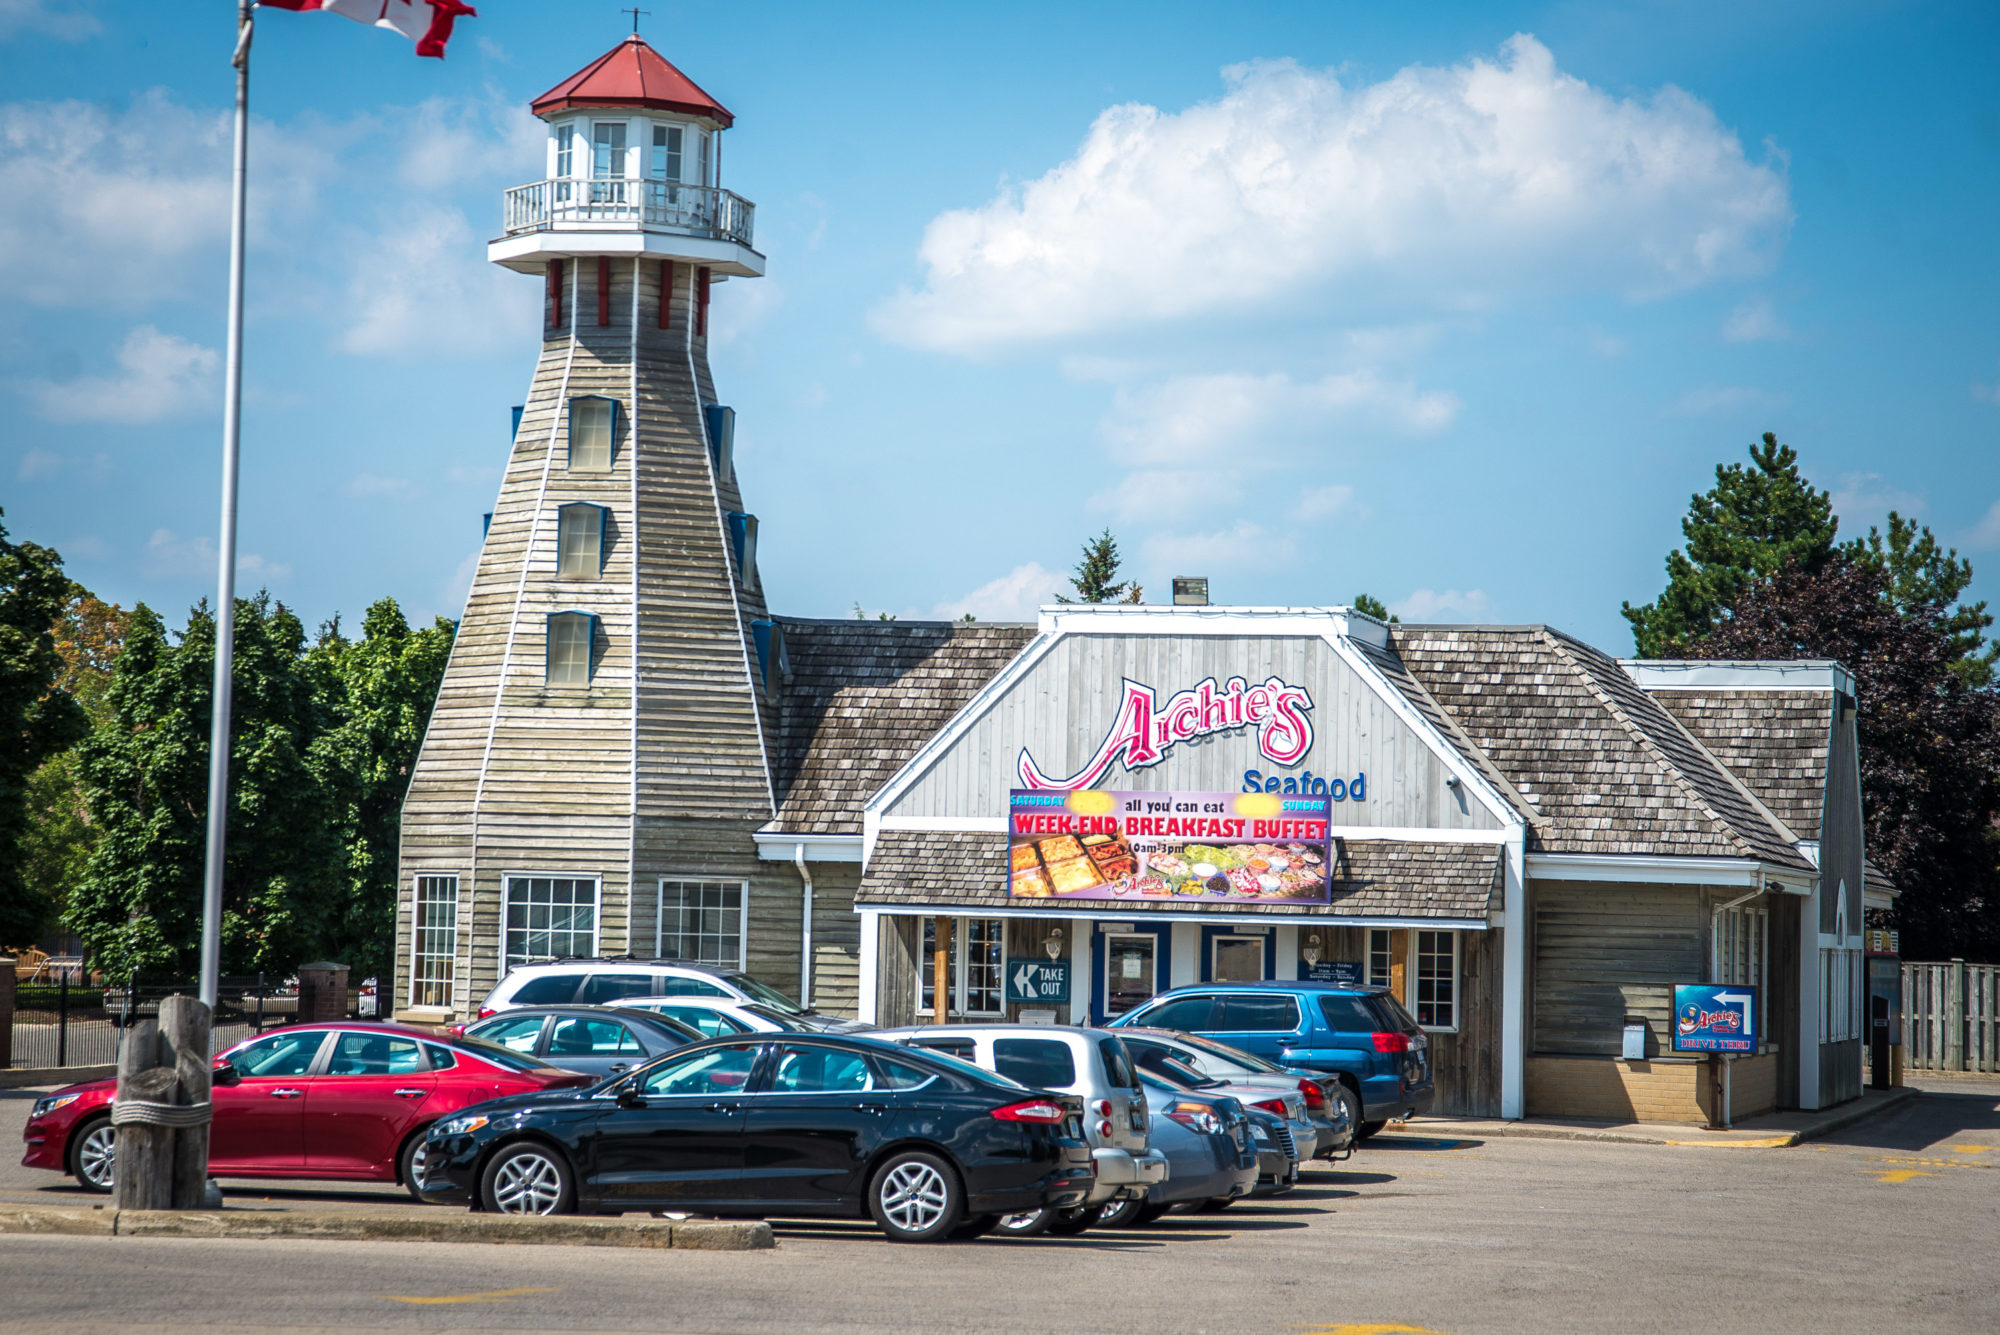 Archies Seafood restaurant in Huron Heights, London, Ontario